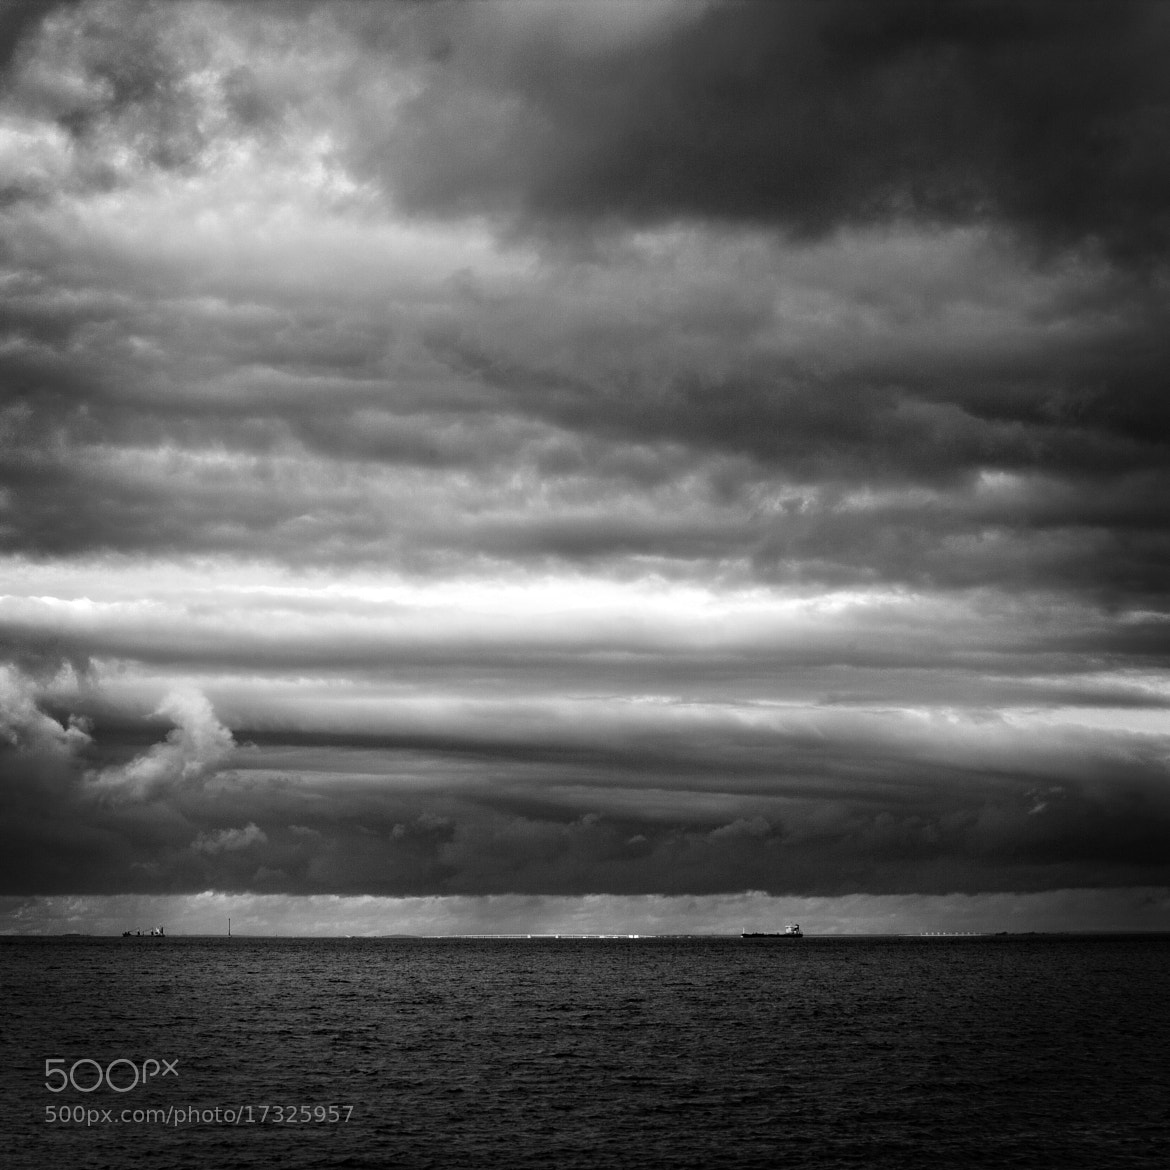 Photograph Sea at St. Petersburg, Russia. by Frank Schillinger on 500px